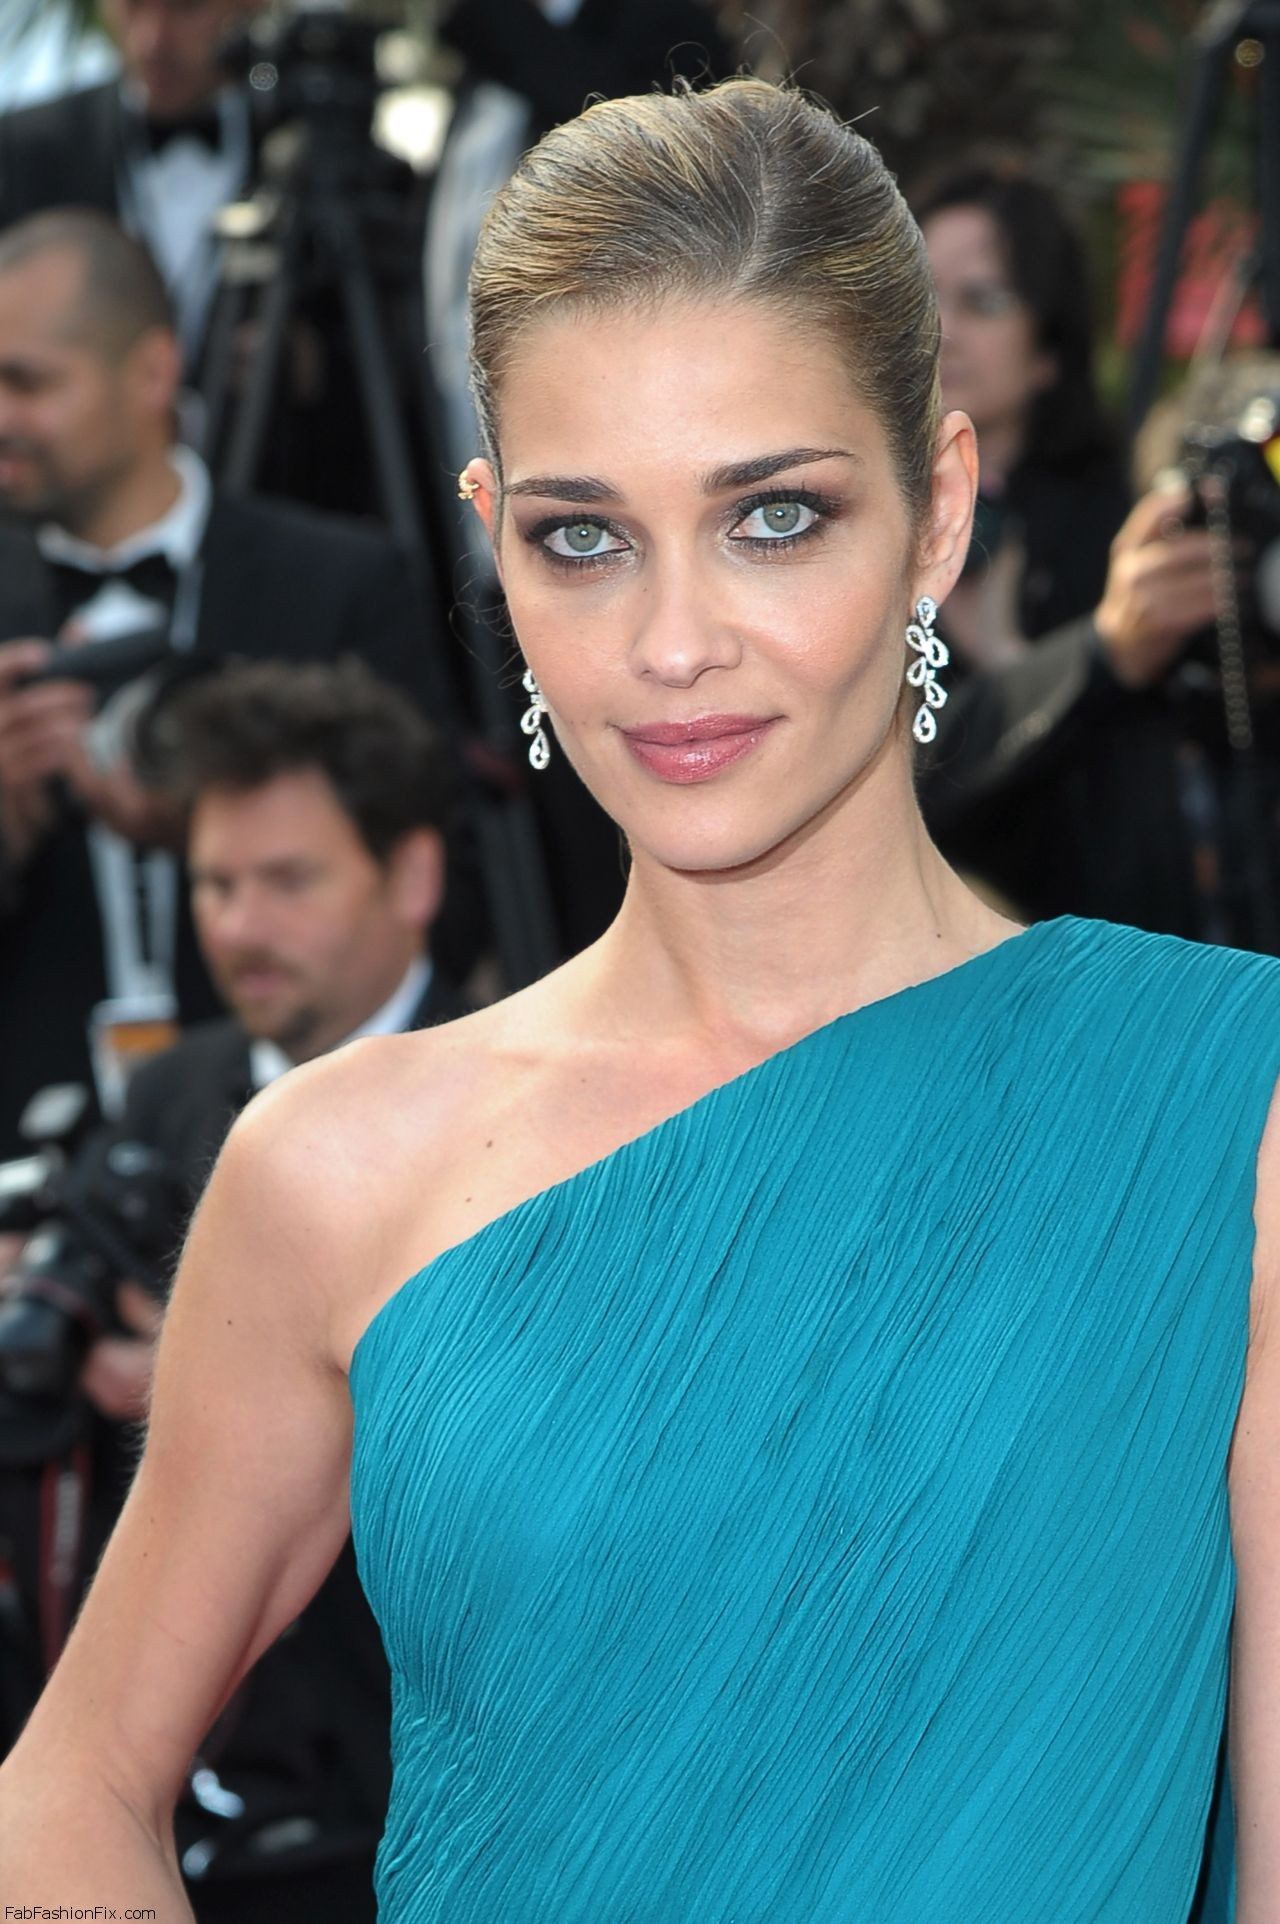 ana-beatriz-barros-the-unknown-girl-la-fille-inconnue-premiere-at-69th-cannes-film-festival-5-18-2016-10